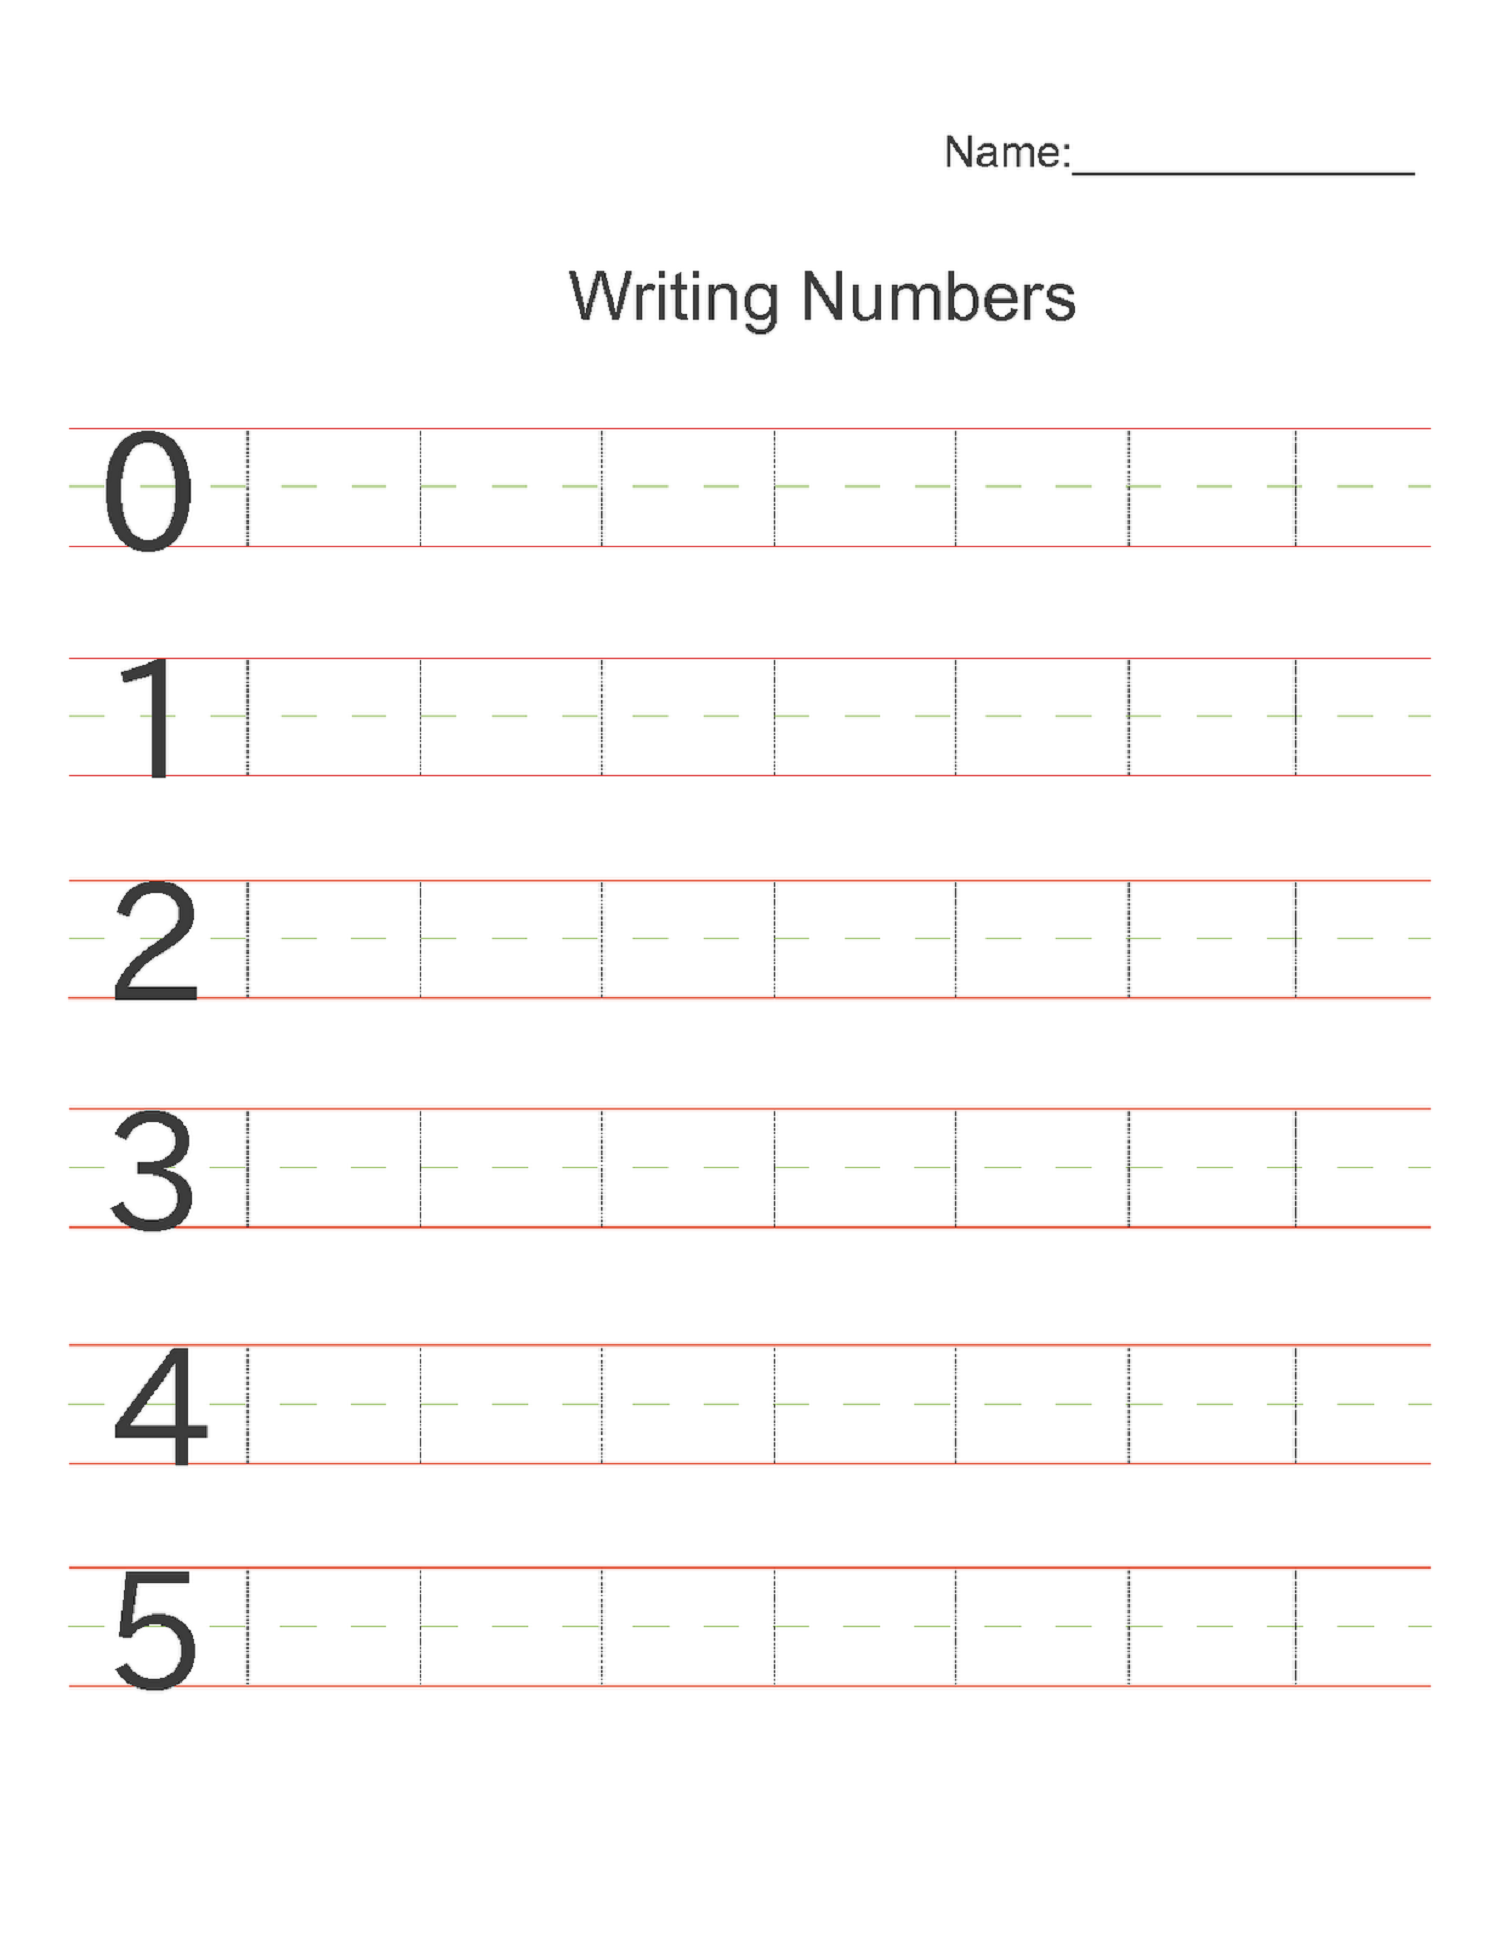 Writing Numbers Worksheet For Basic Mathematics